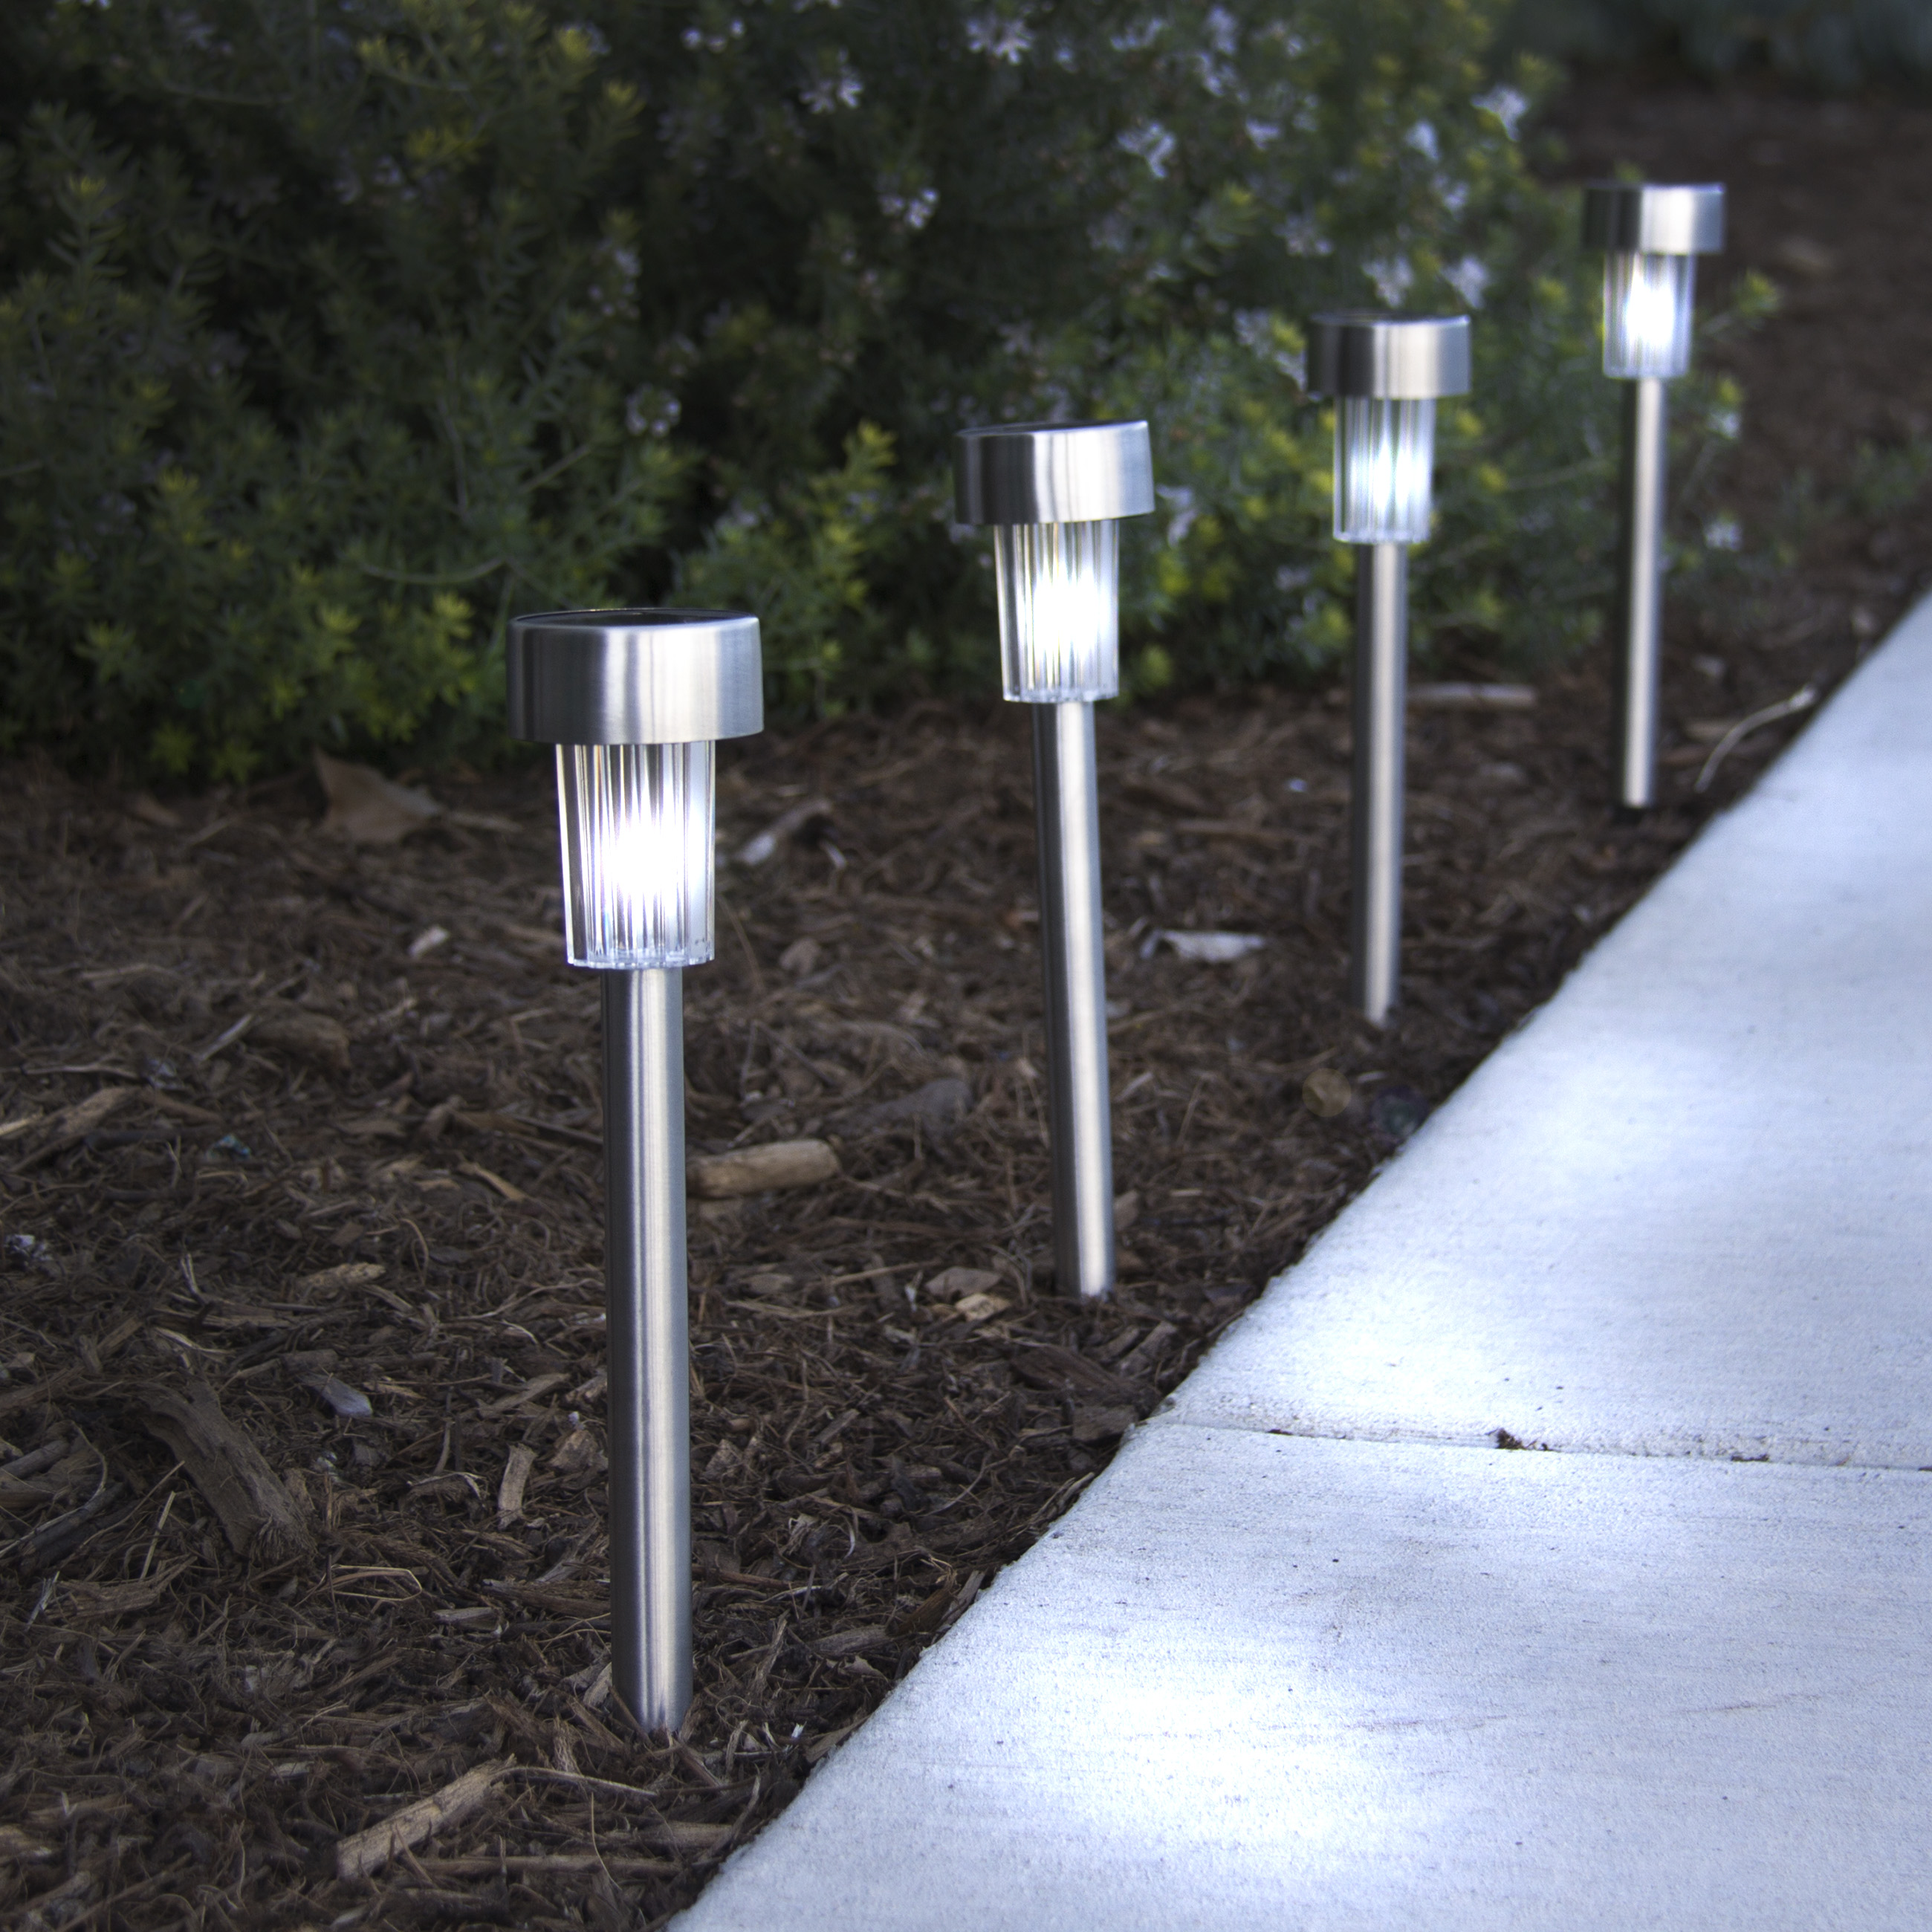 24 White Color Solar Power Stainless Steel LED Lights Pathway Landscape Garden by